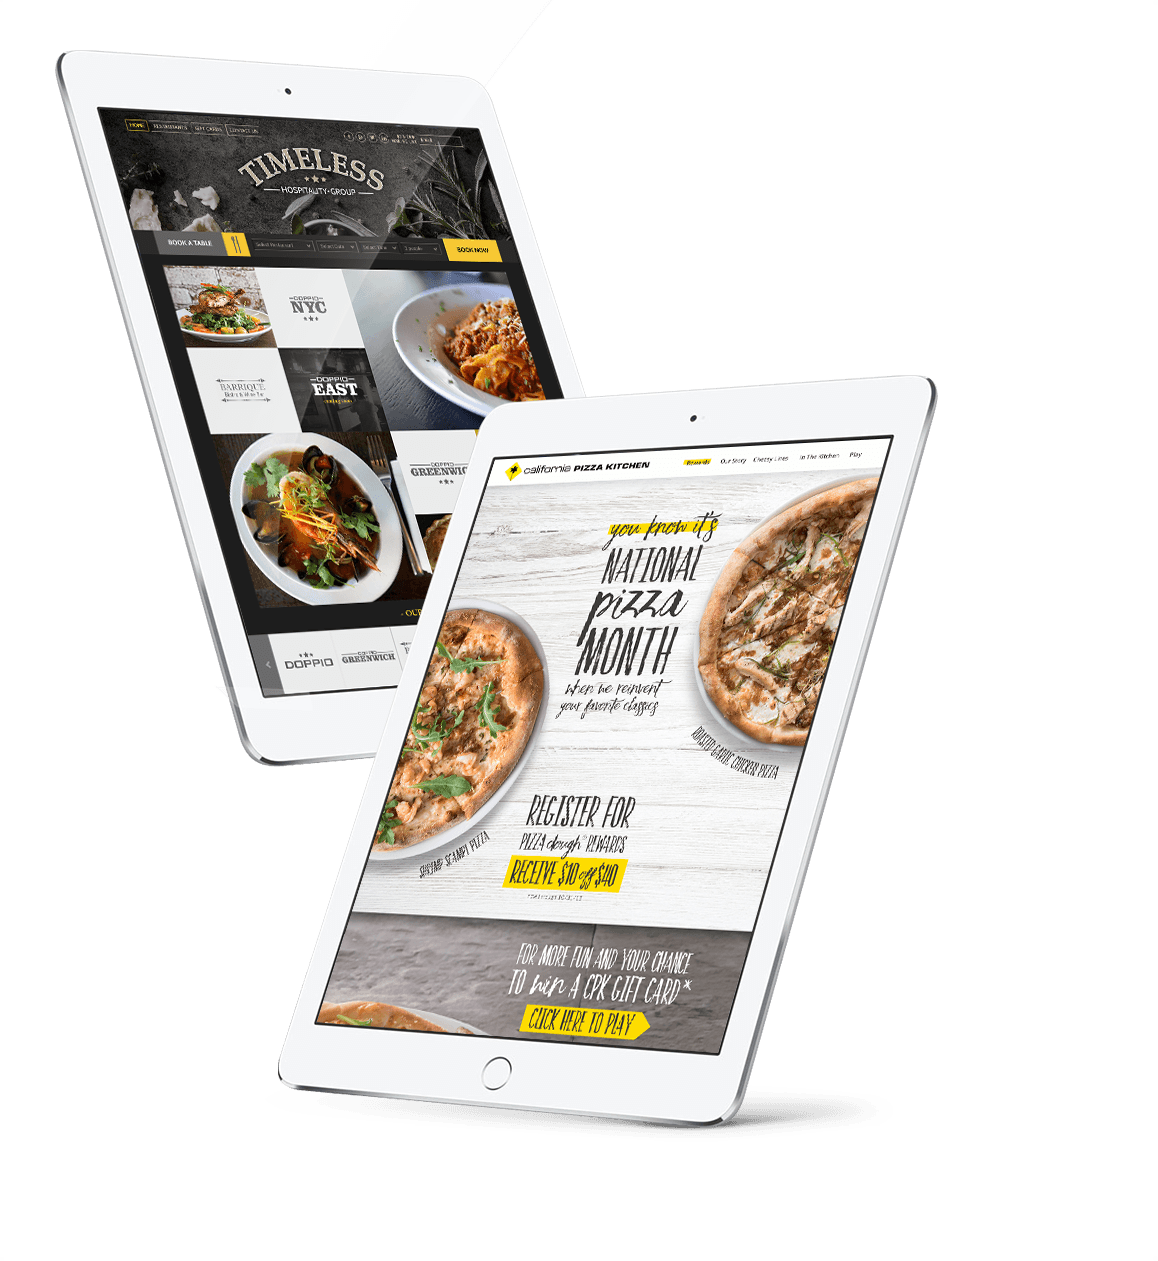 Restaurant website design in an ipad and California Pizza Kitchen website development in a tablet